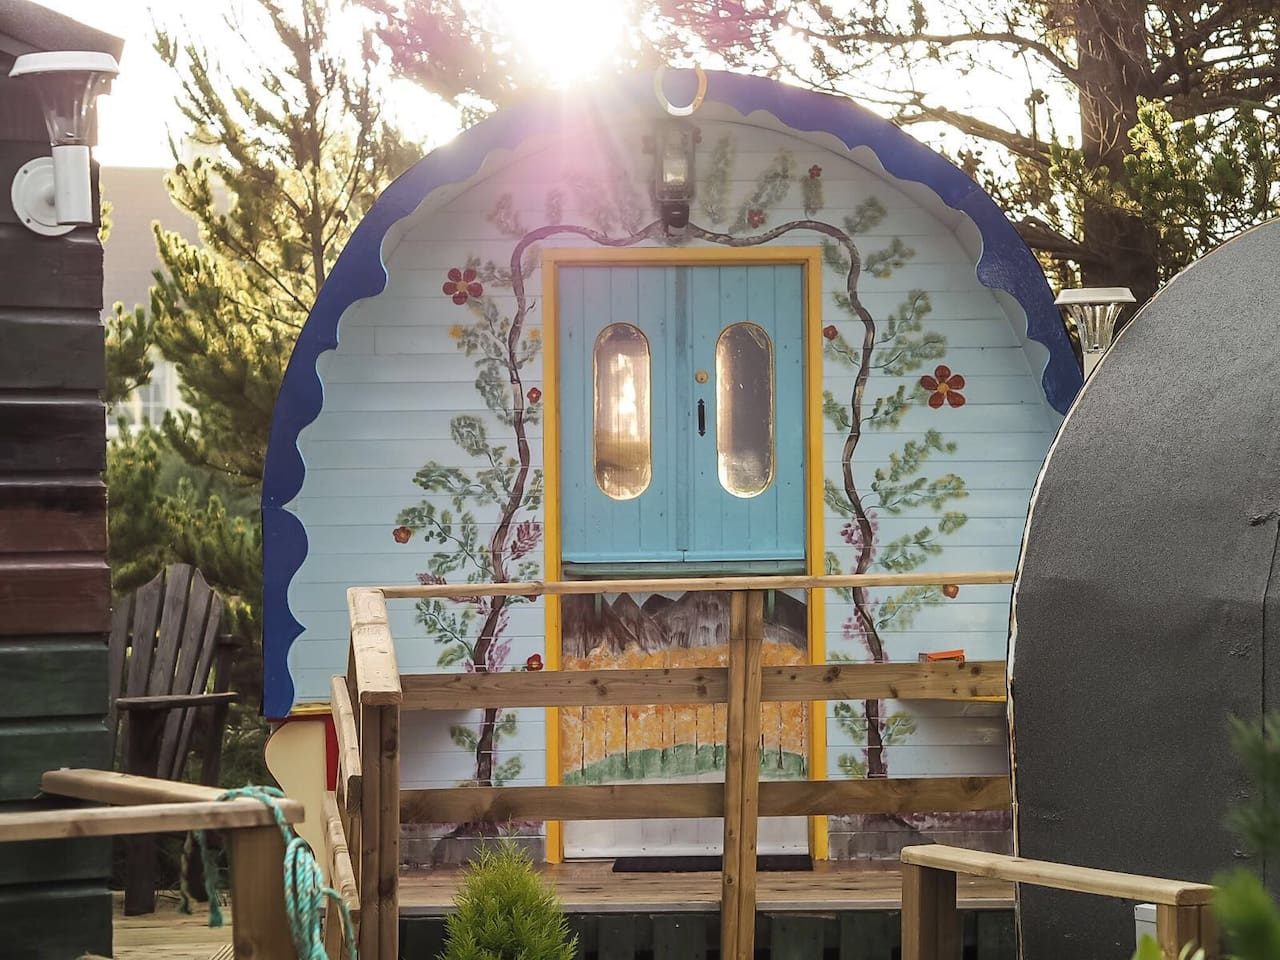 Beautifully designed and decorated modern gypsy caravan